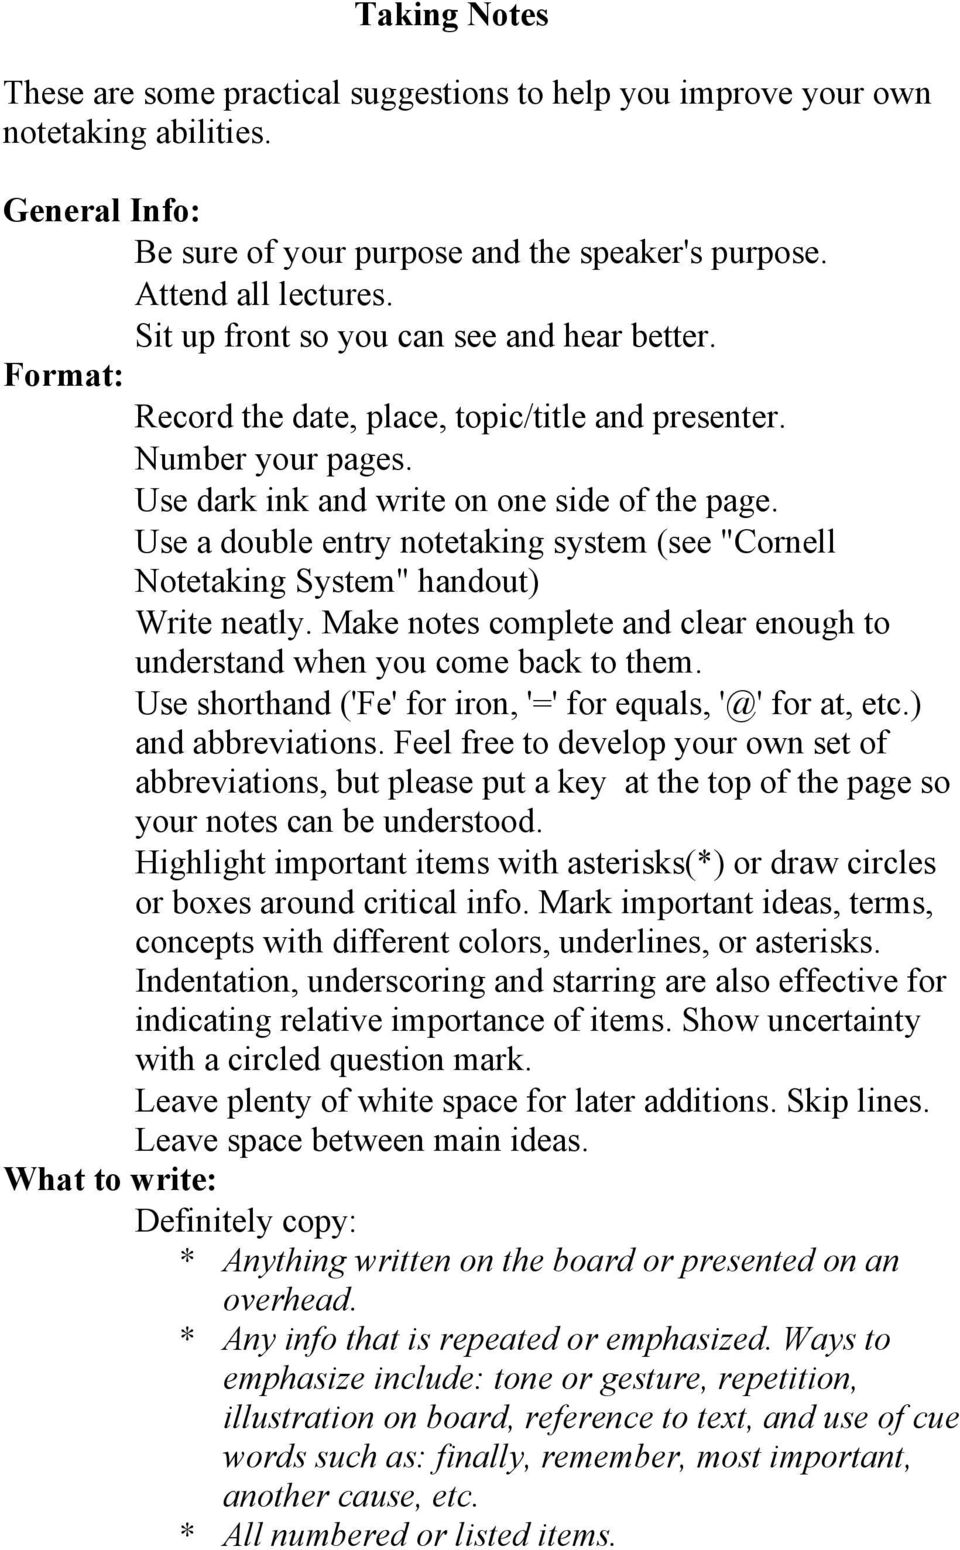 "Use a double entry notetaking system (see ""Cornell Notetaking System"" handout) Write neatly. Make notes complete and clear enough to understand when you come back to them."